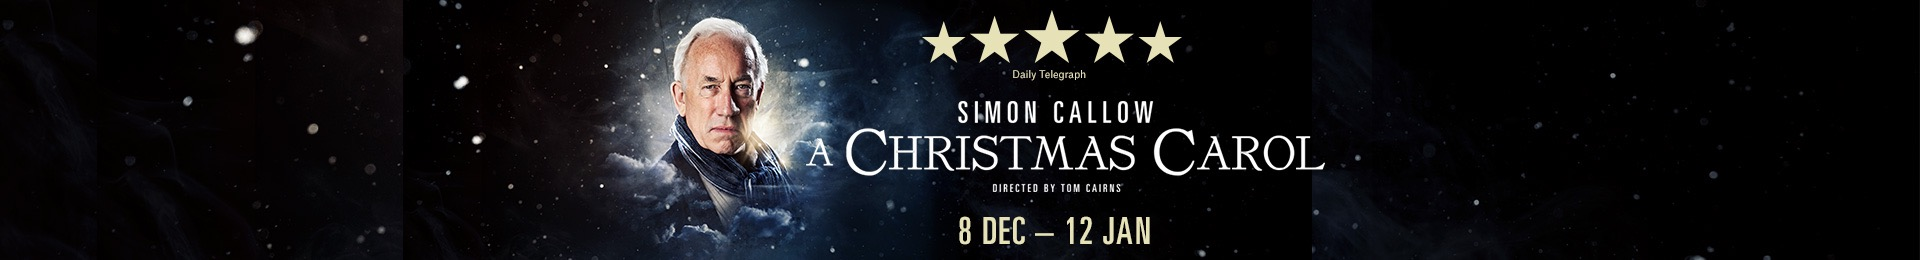 A Christmas Carol with Simon Callow a the Arts Theatre London tickets